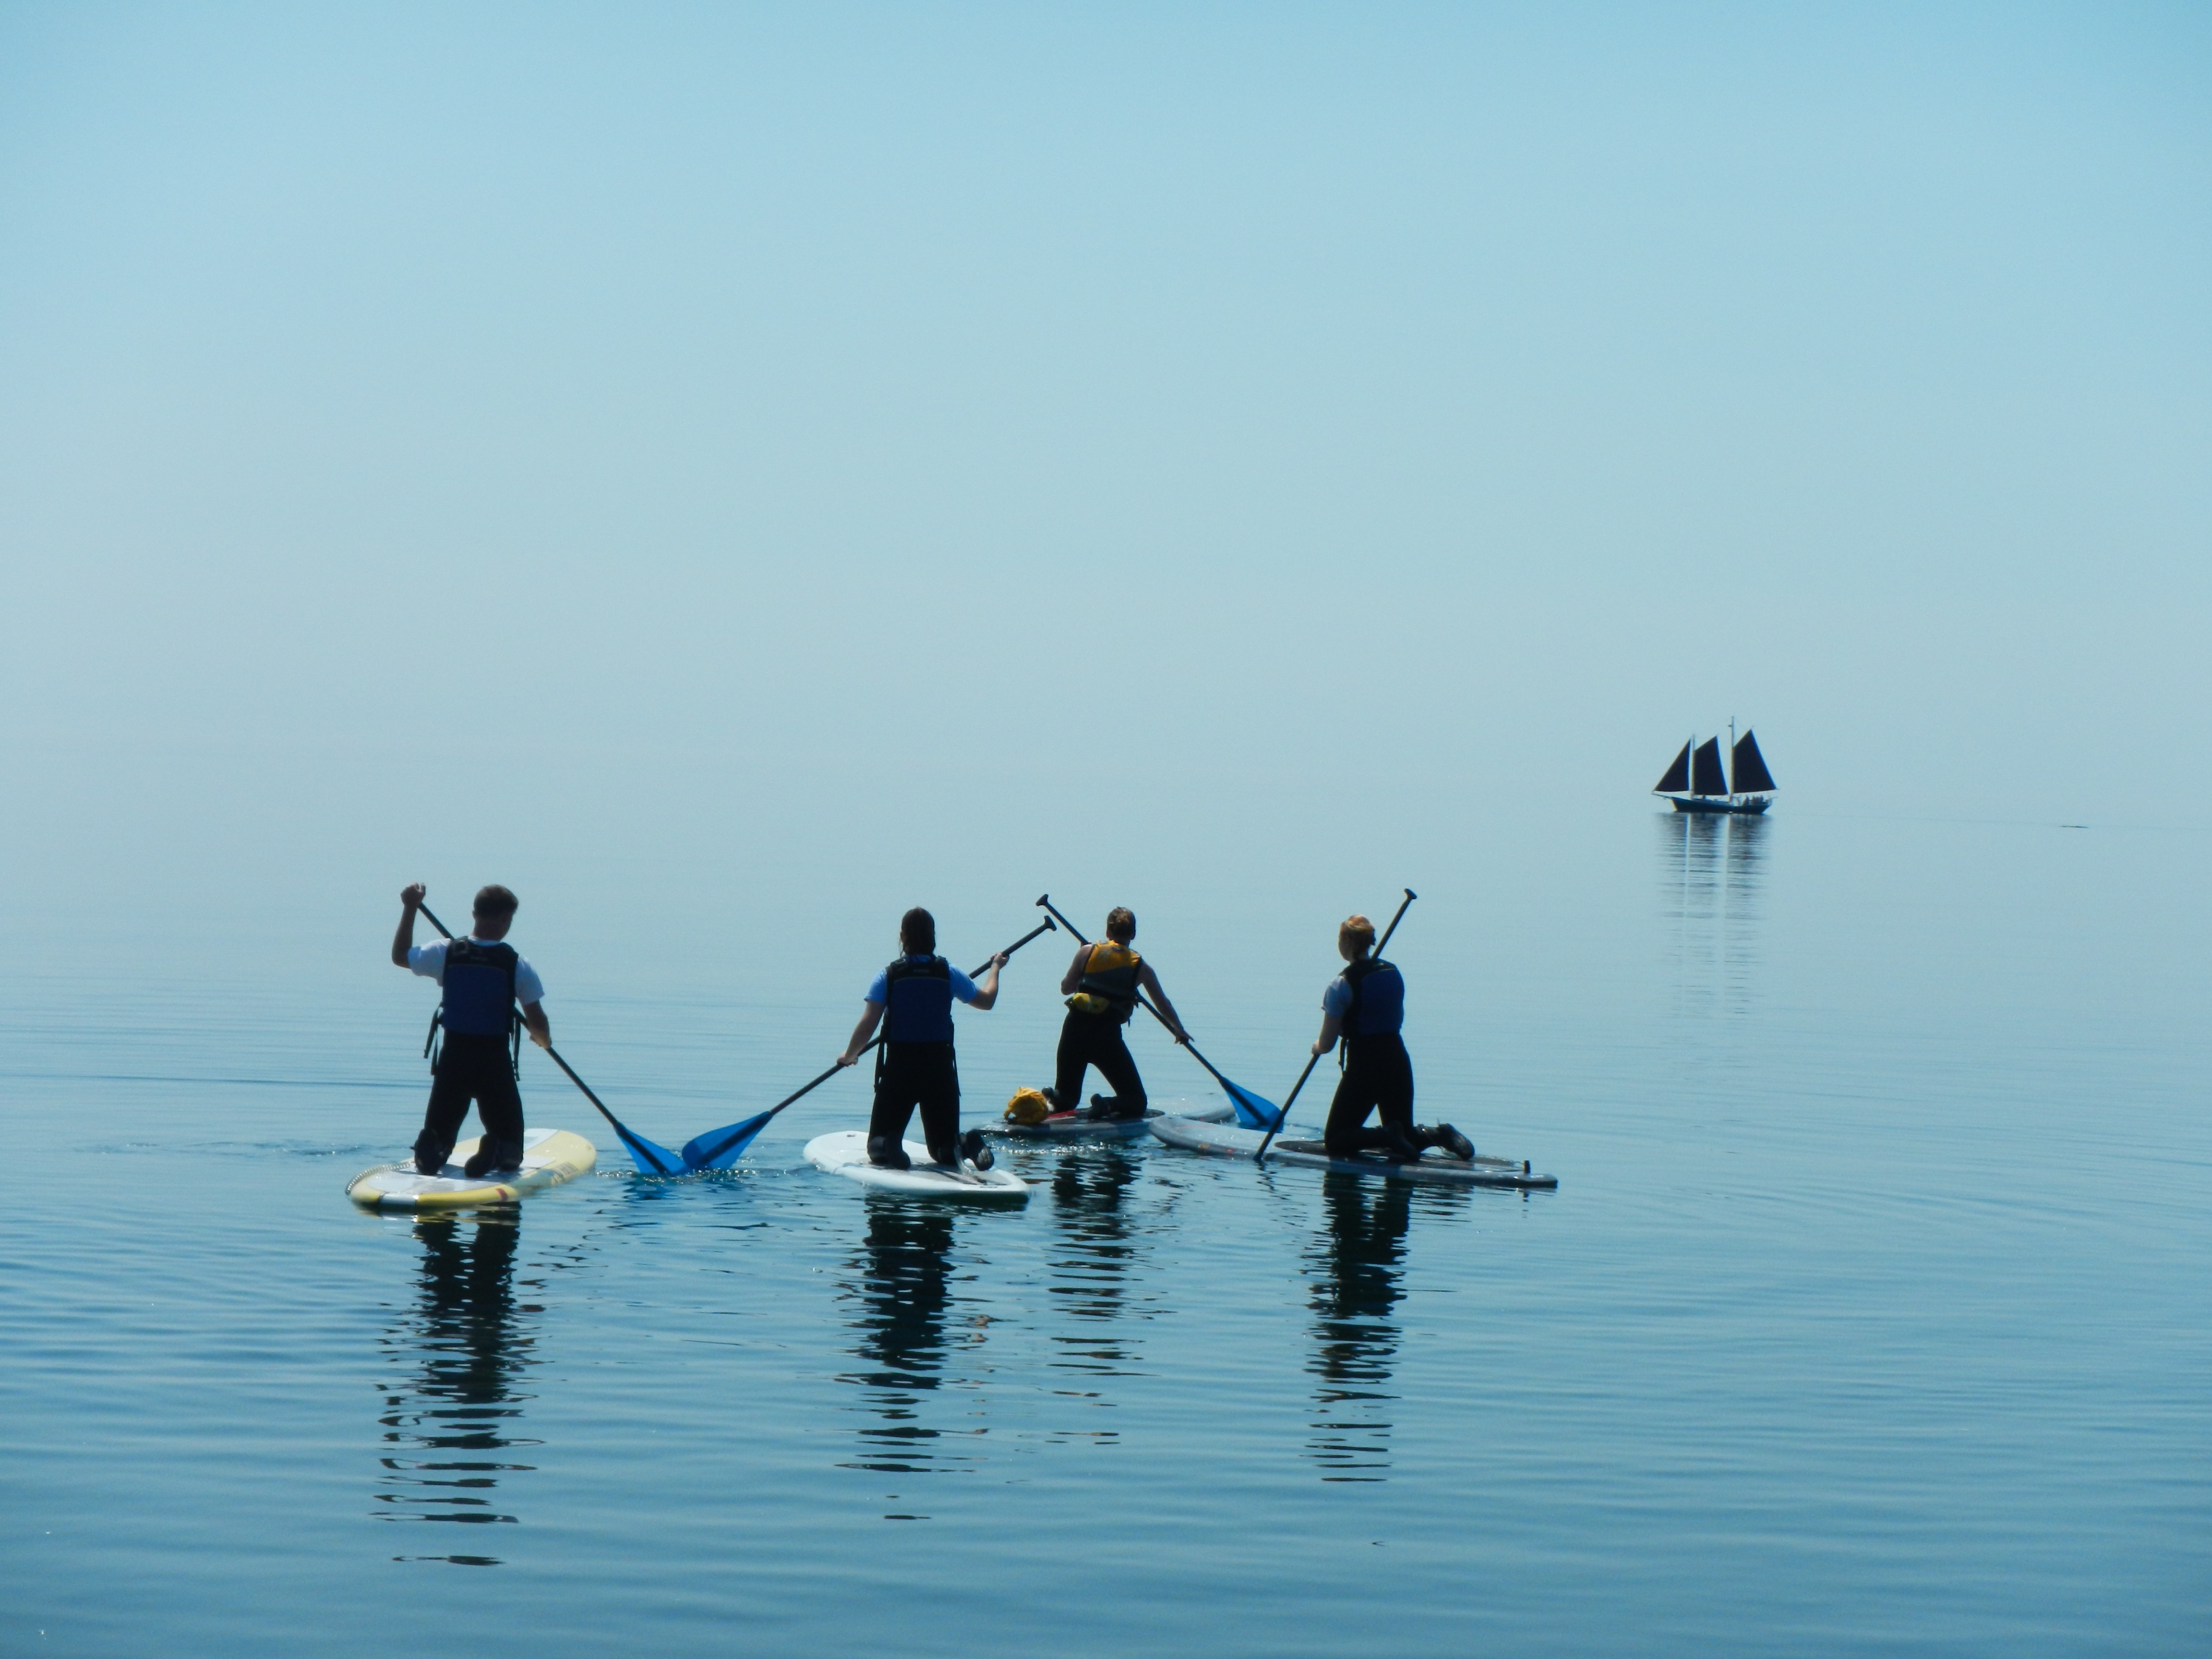 North shore water festival learn to paddle board grand marais